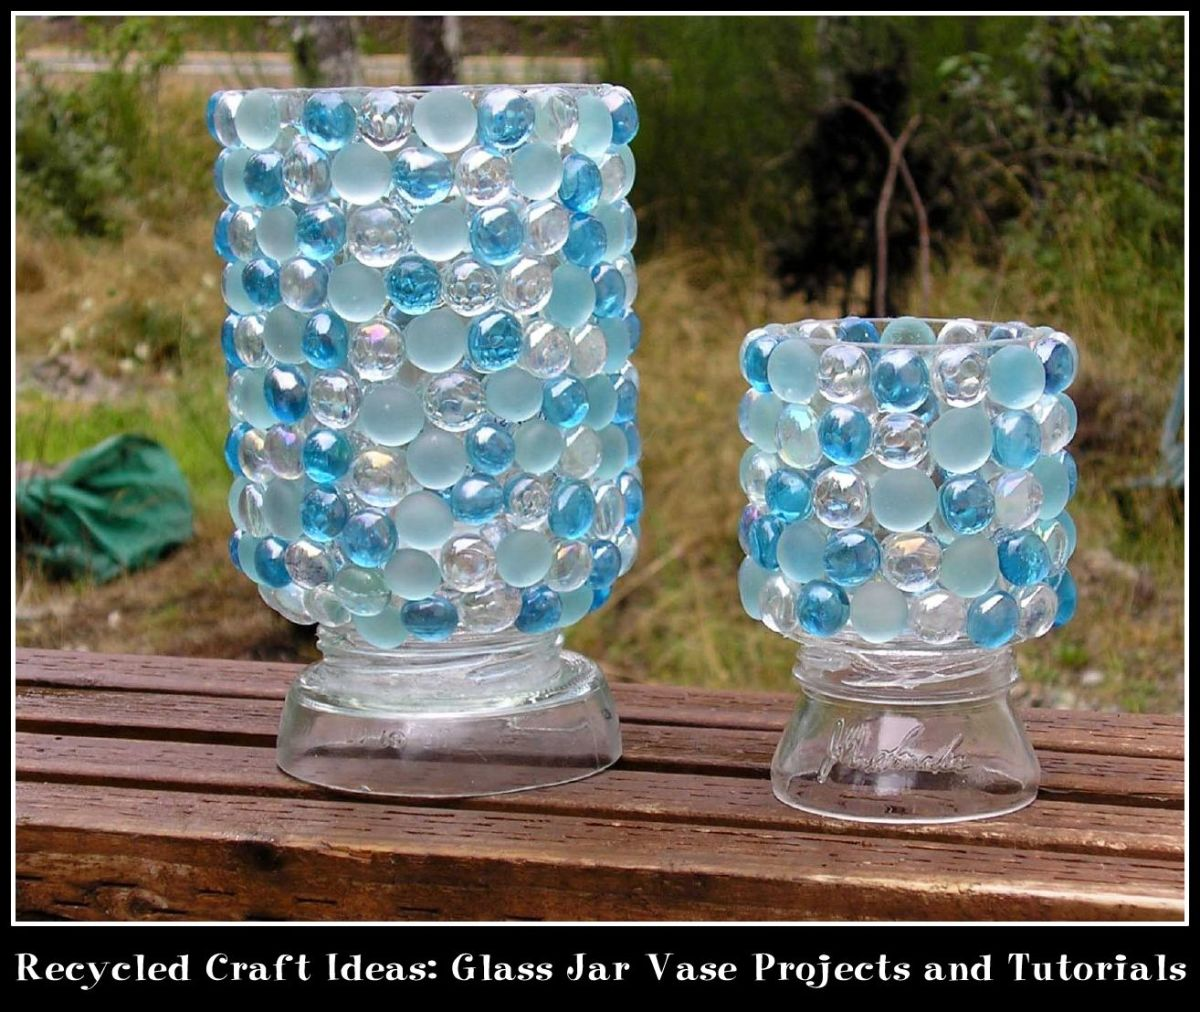 Recycled craft ideas glass jar vase projects and for Recycle project ideas